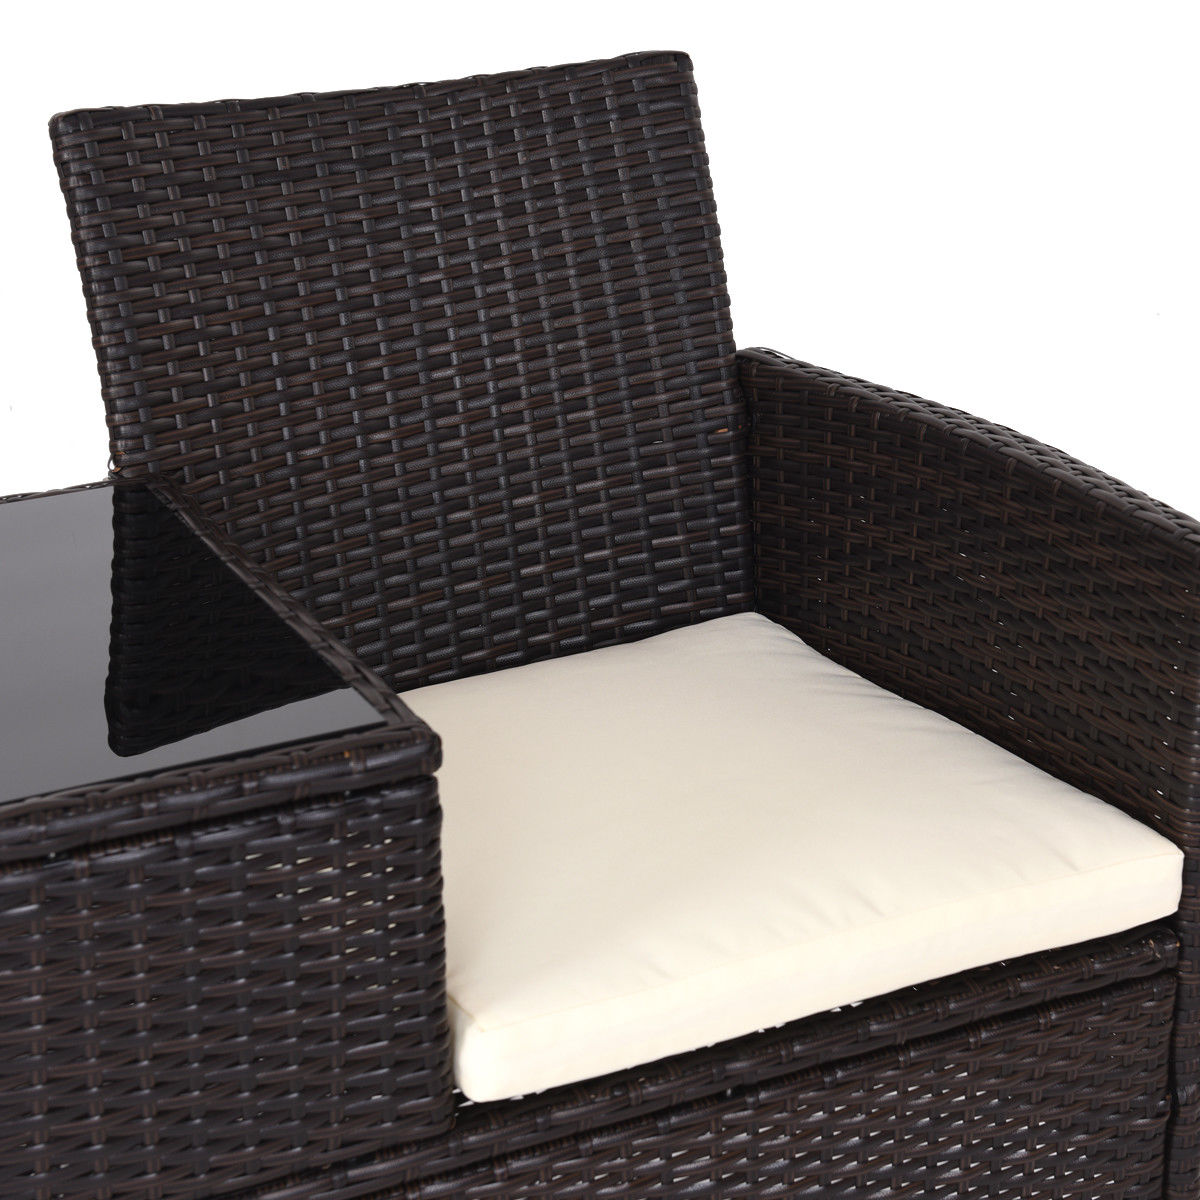 Costway Patio Rattan Chat Set Seat Sofa Loveseat Table Chairs w/ Cushion - image 7 de 9